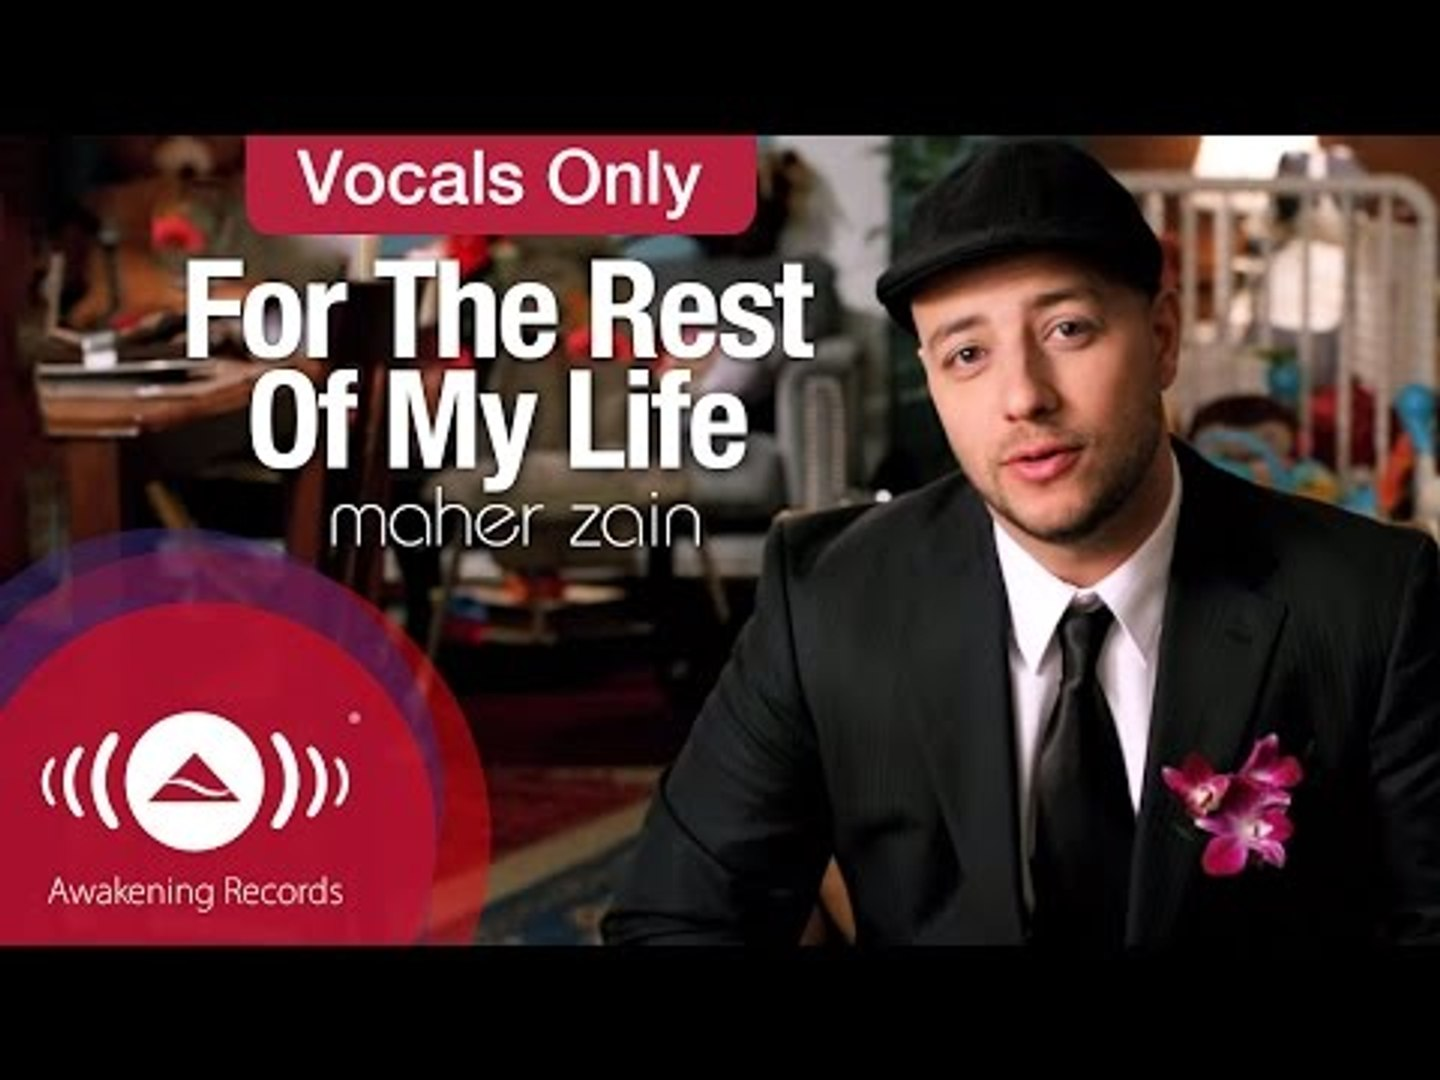 Maher Zain - For The Rest Of My Life | Vocals Only (Official Music Video)